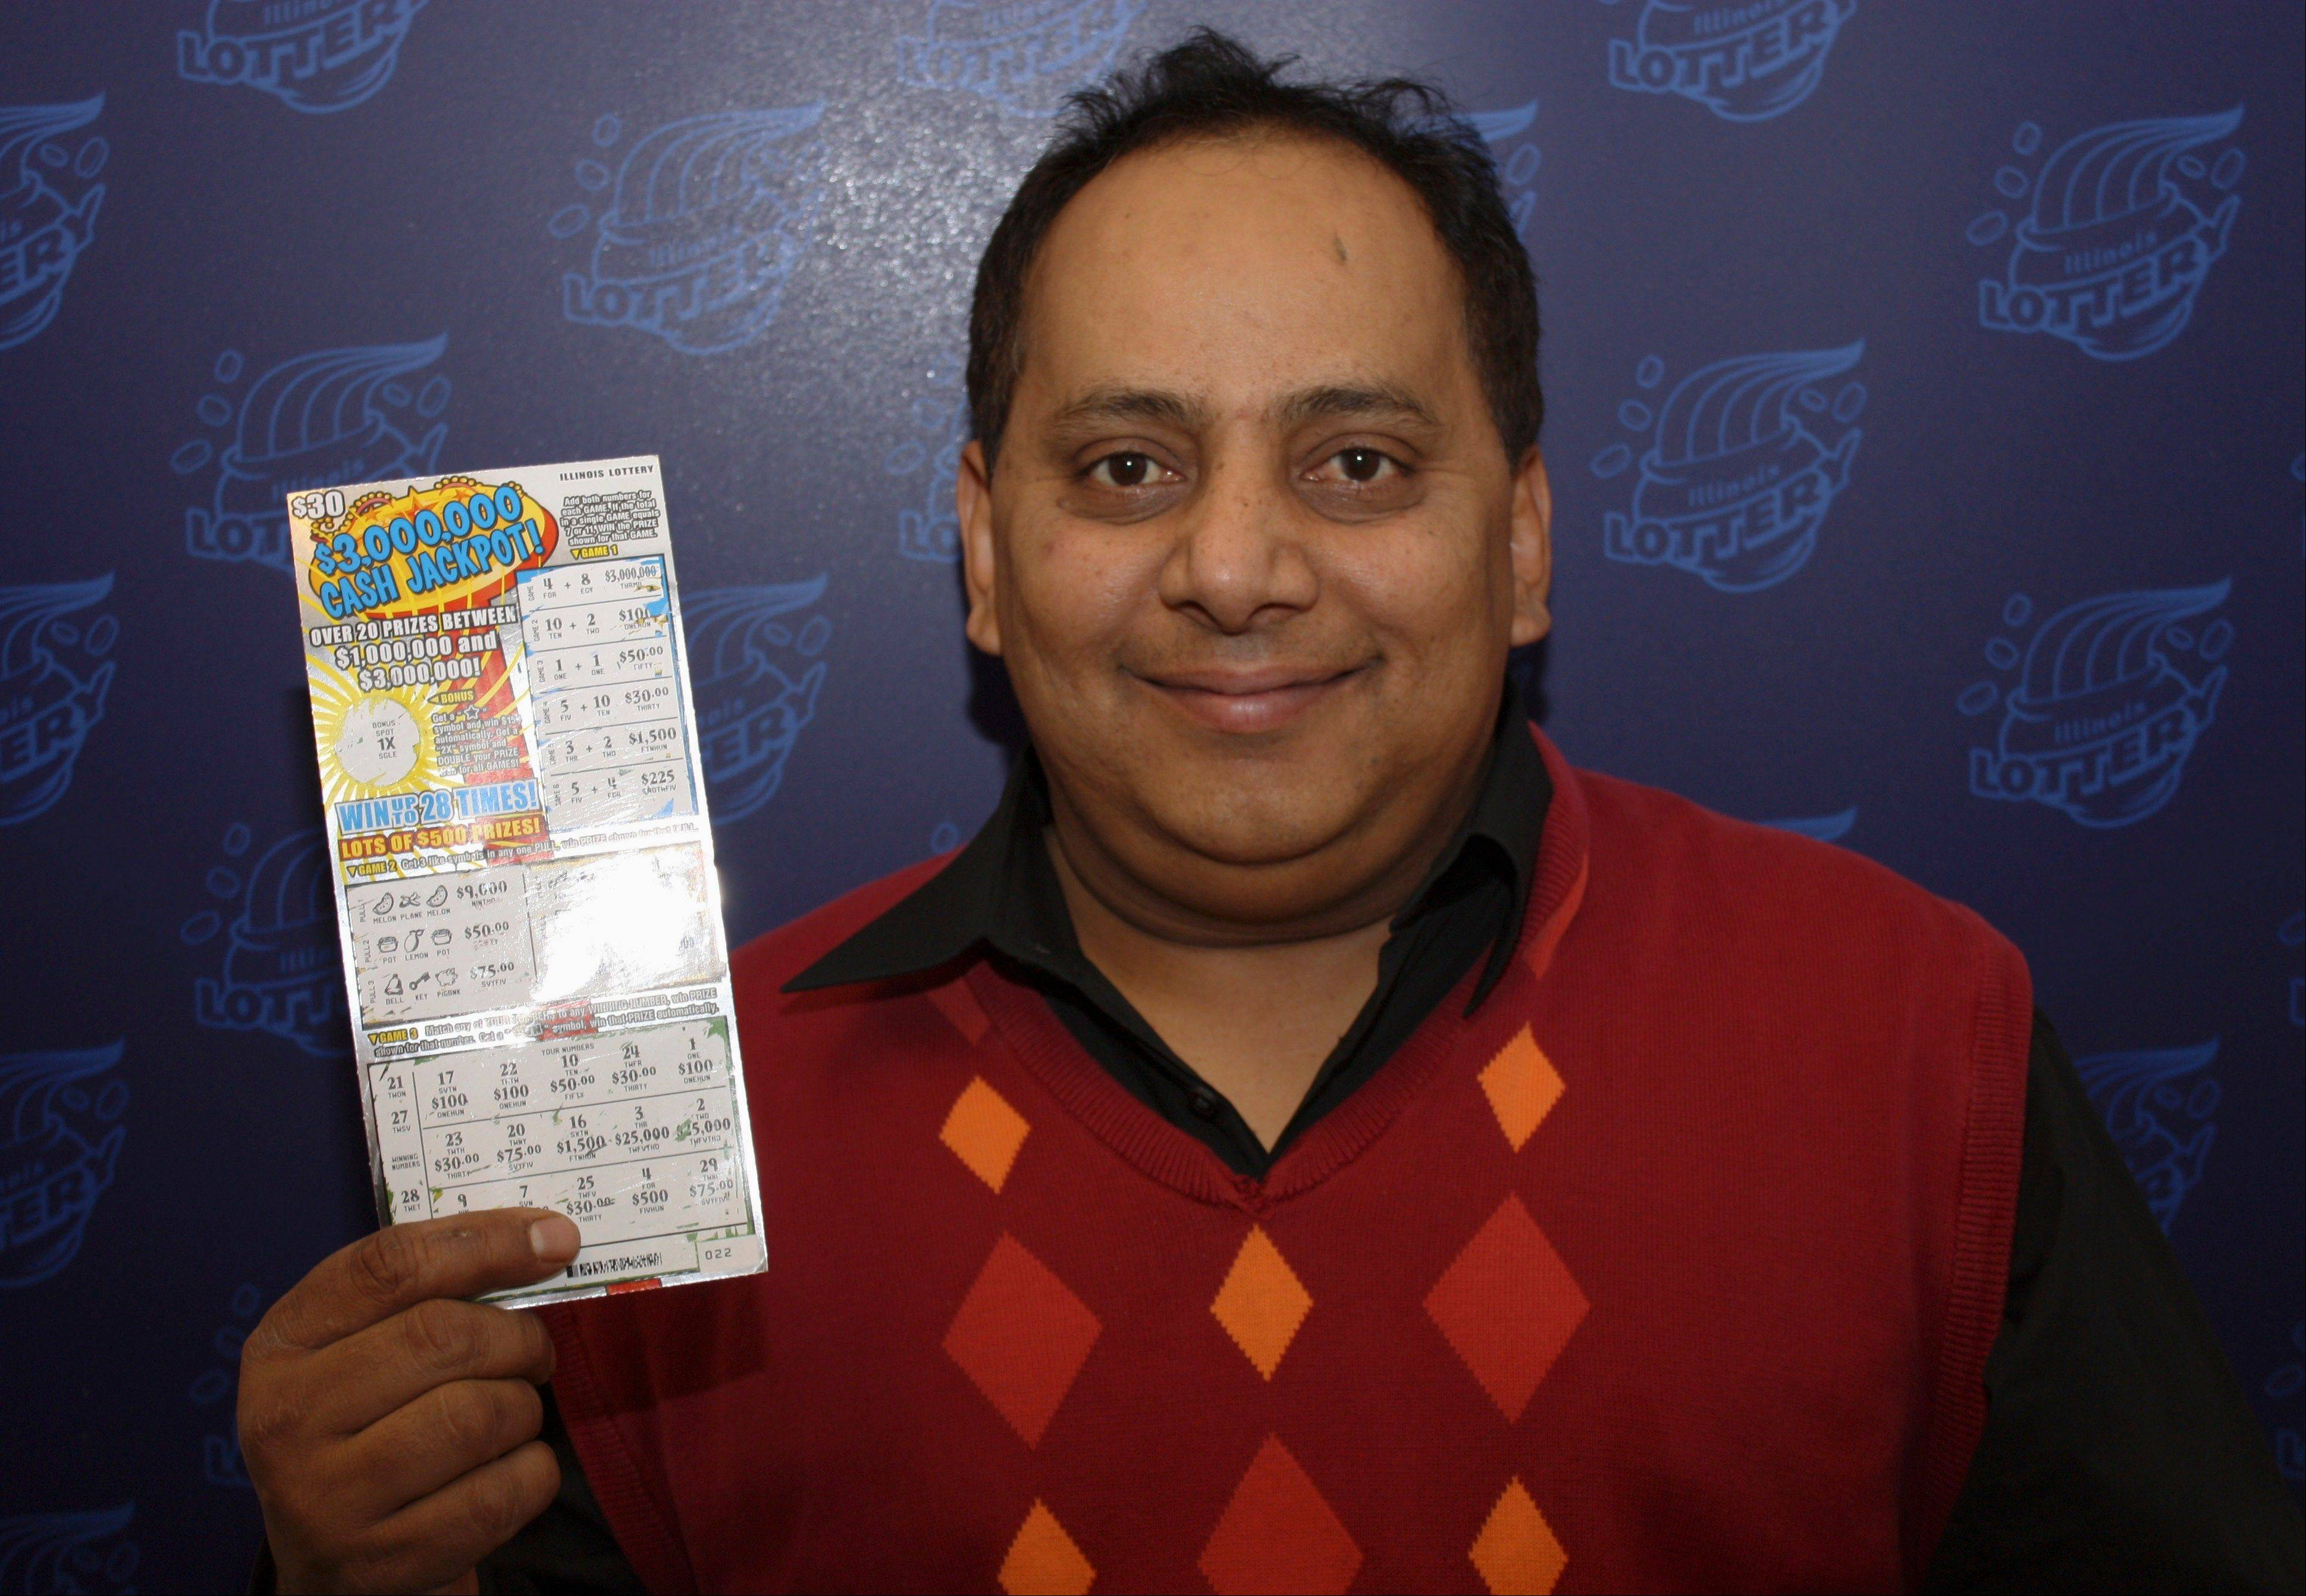 Urooj Khan, 46, of Chicago, poses with a winning lottery ticket. Khan died from cyanide poisoning in July shortly before collecting $425,000 in winnings.